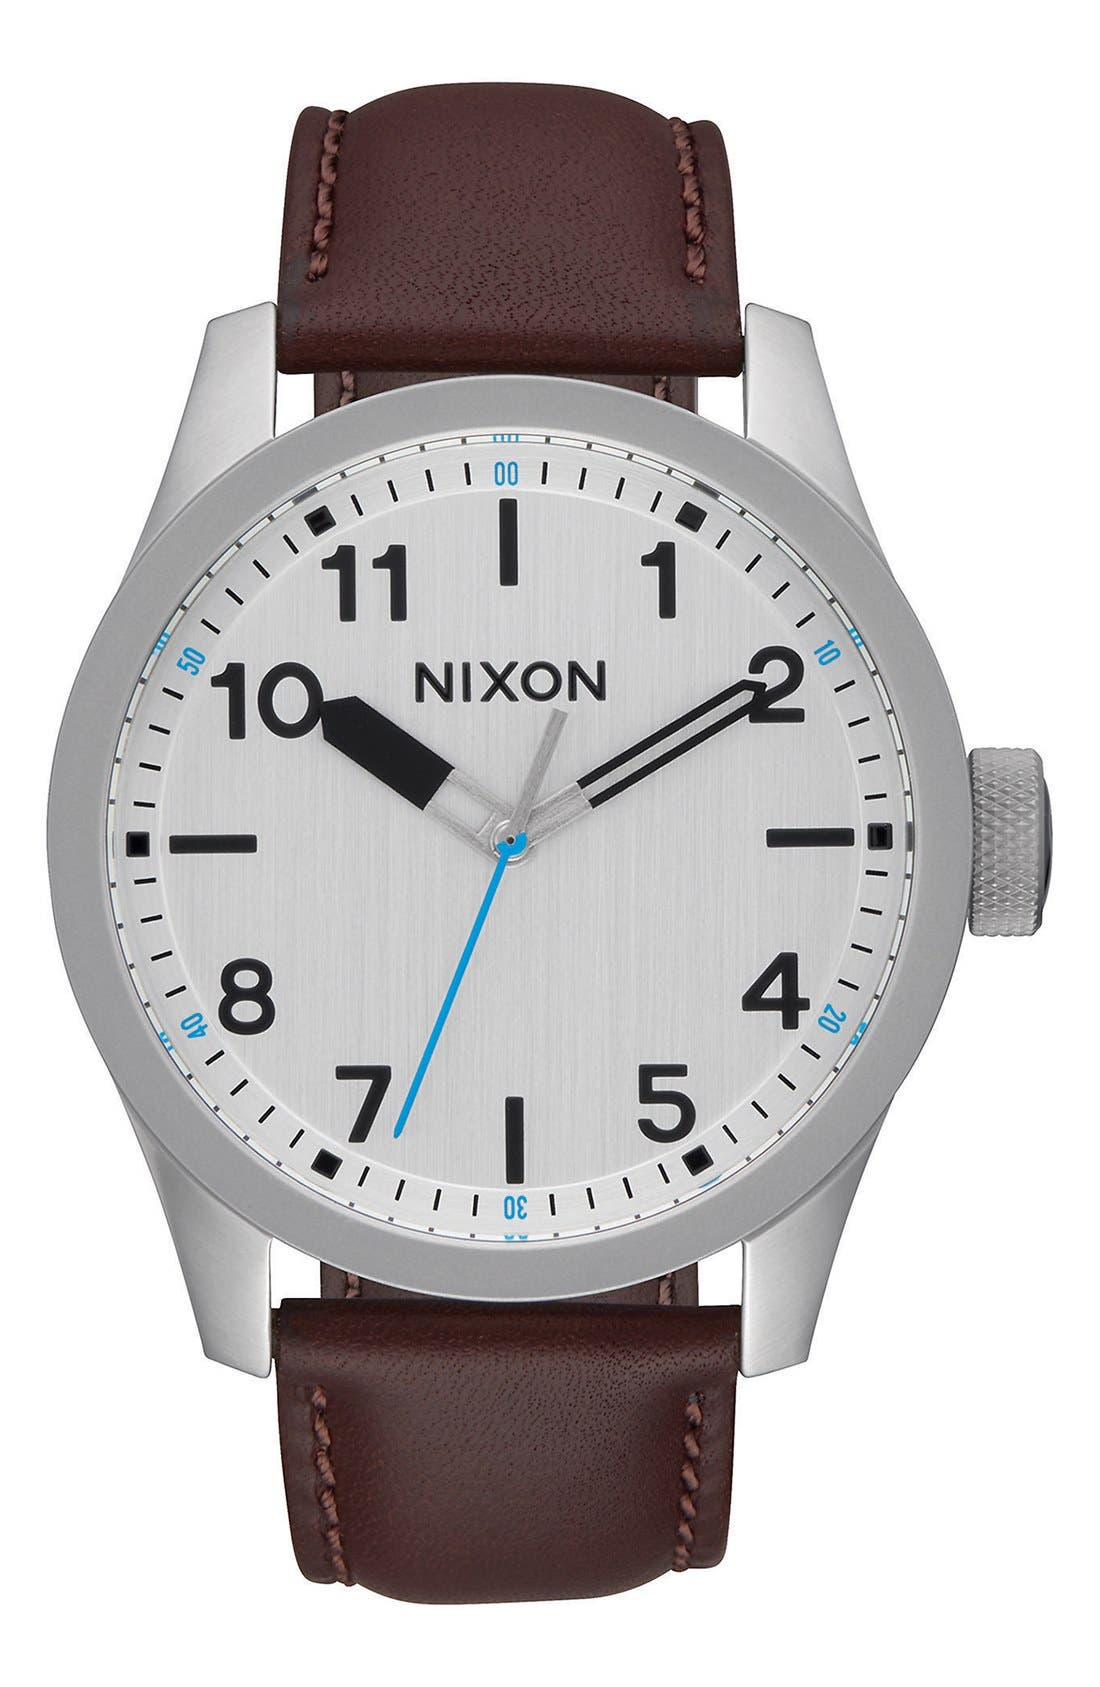 NIXON Safari Leather Strap Watch, 43mm